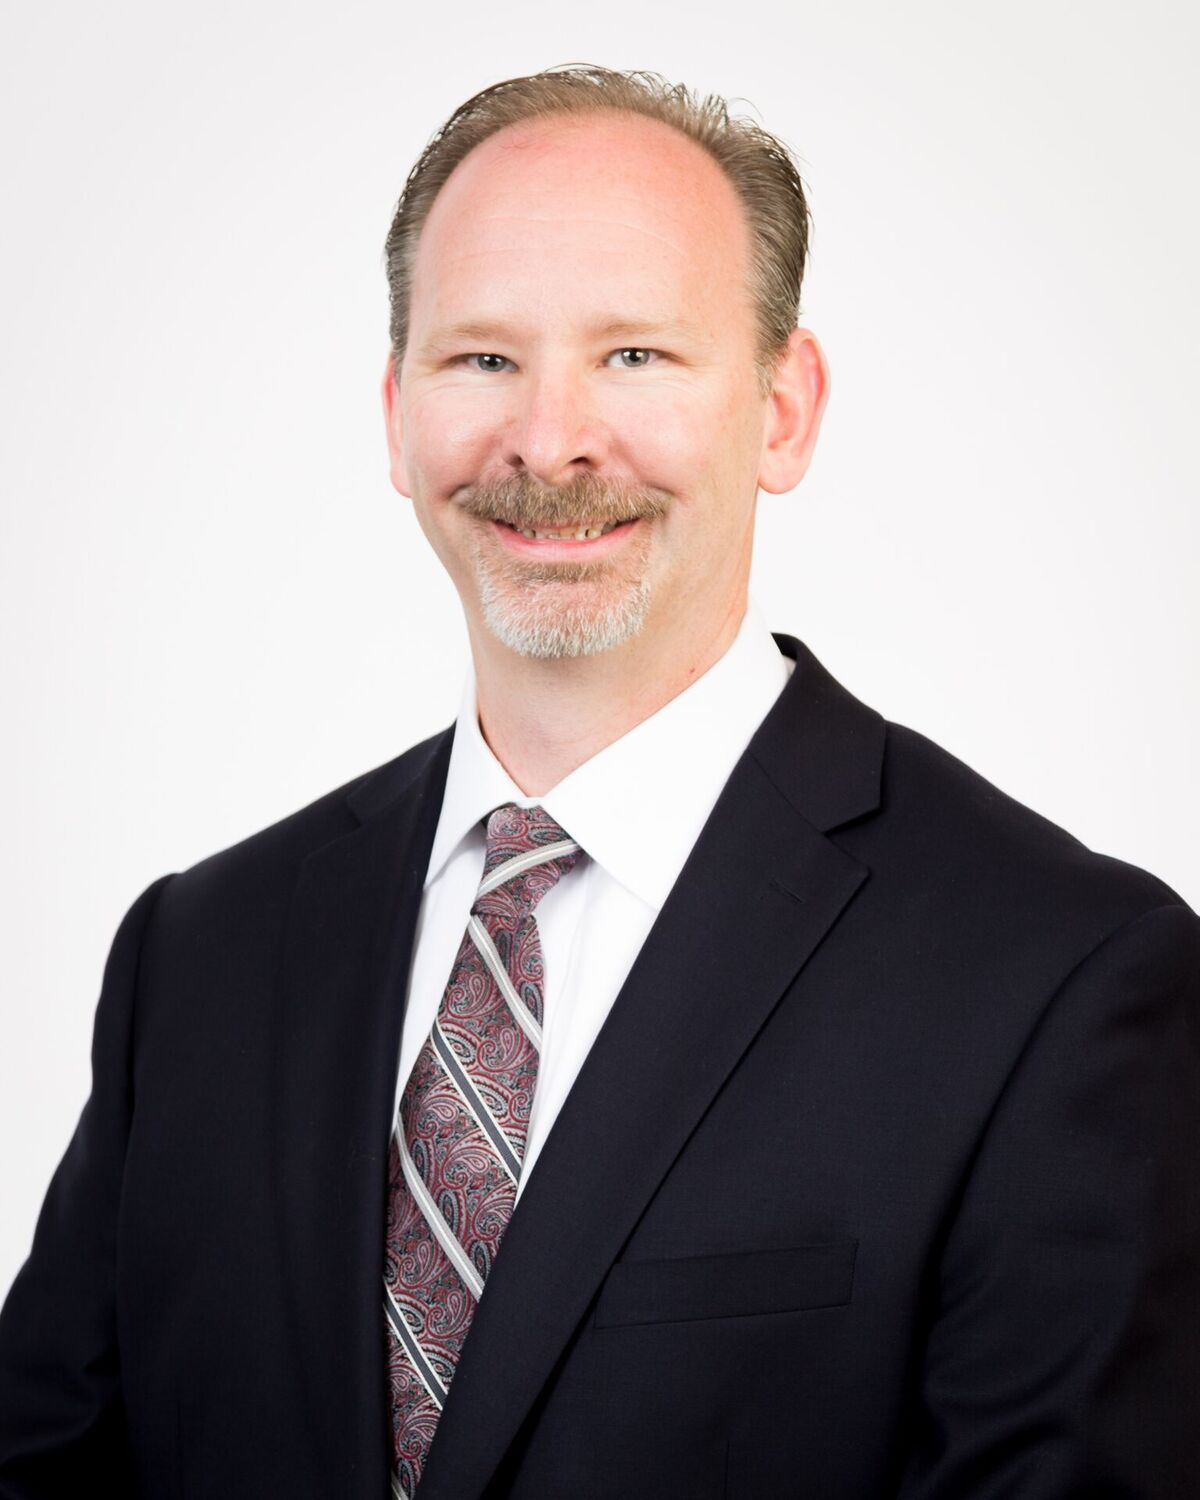 Christopher Gurnee, financial advisor South Ogden UT